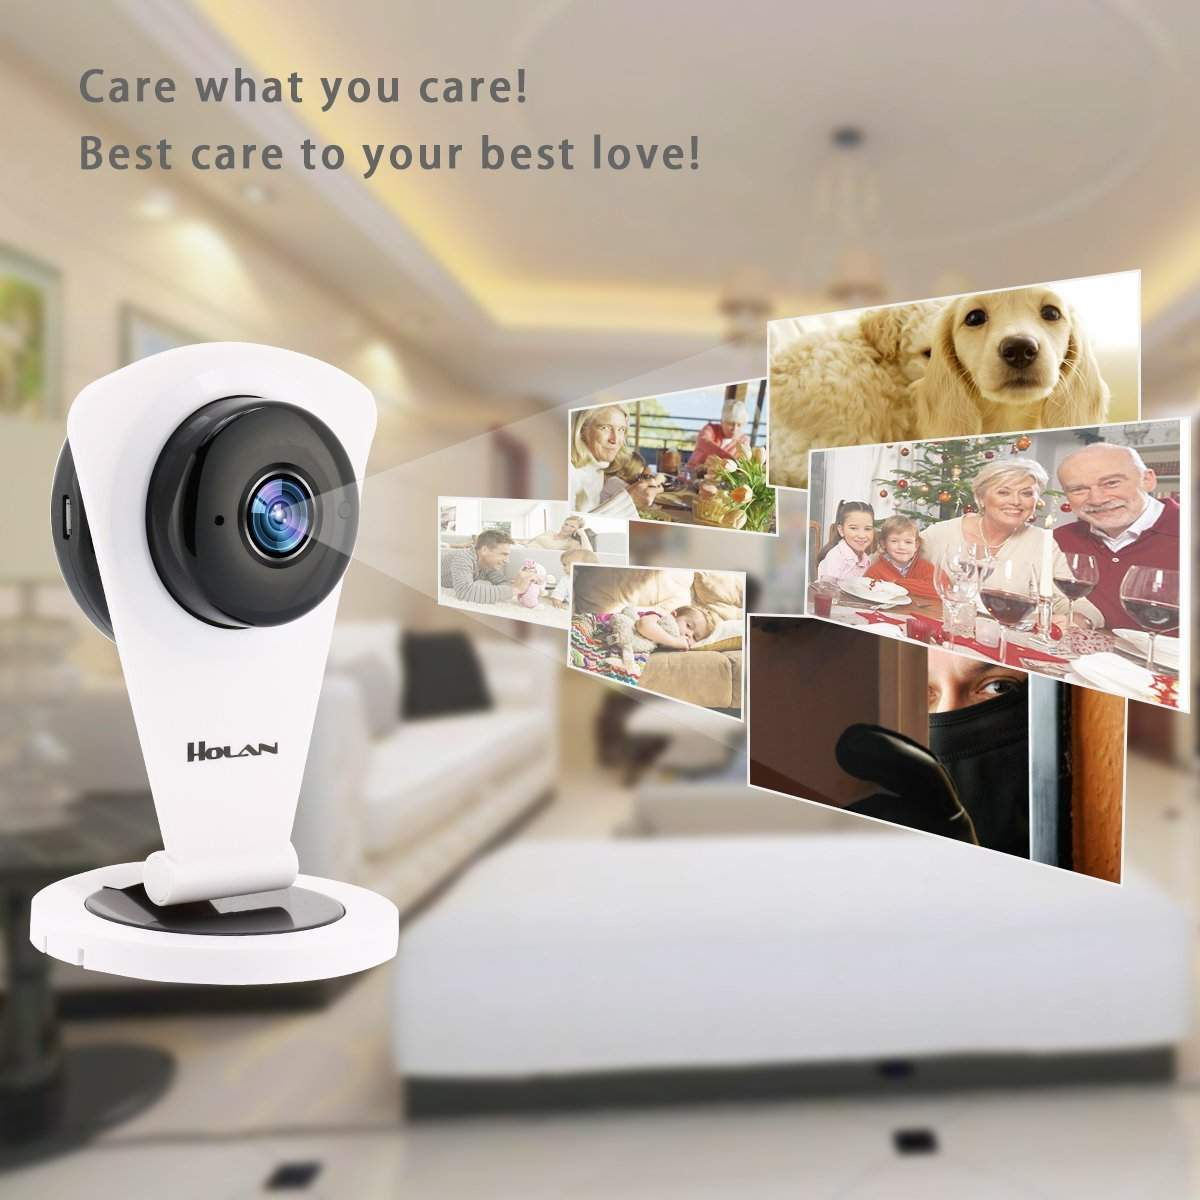 new holan 720p wifi ip security camera home surveillance. Black Bedroom Furniture Sets. Home Design Ideas